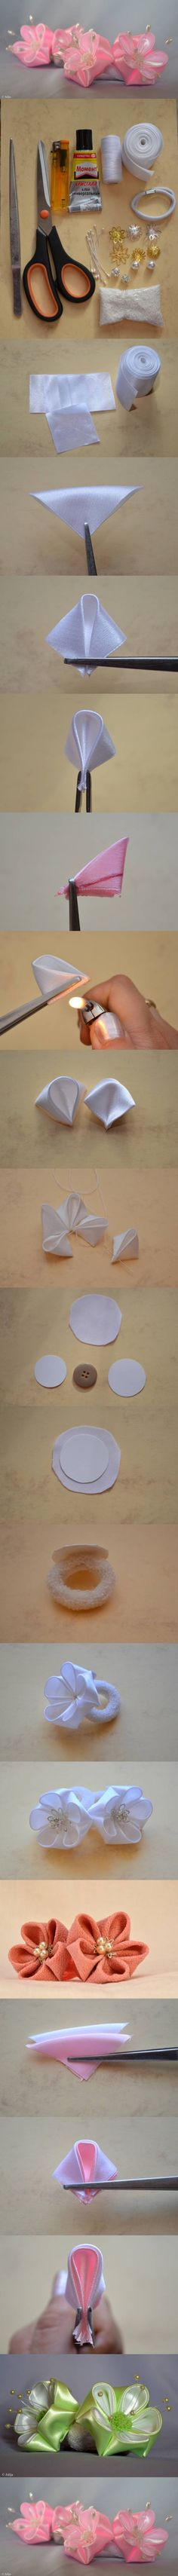 DIY Round Petals Ribbon Flower